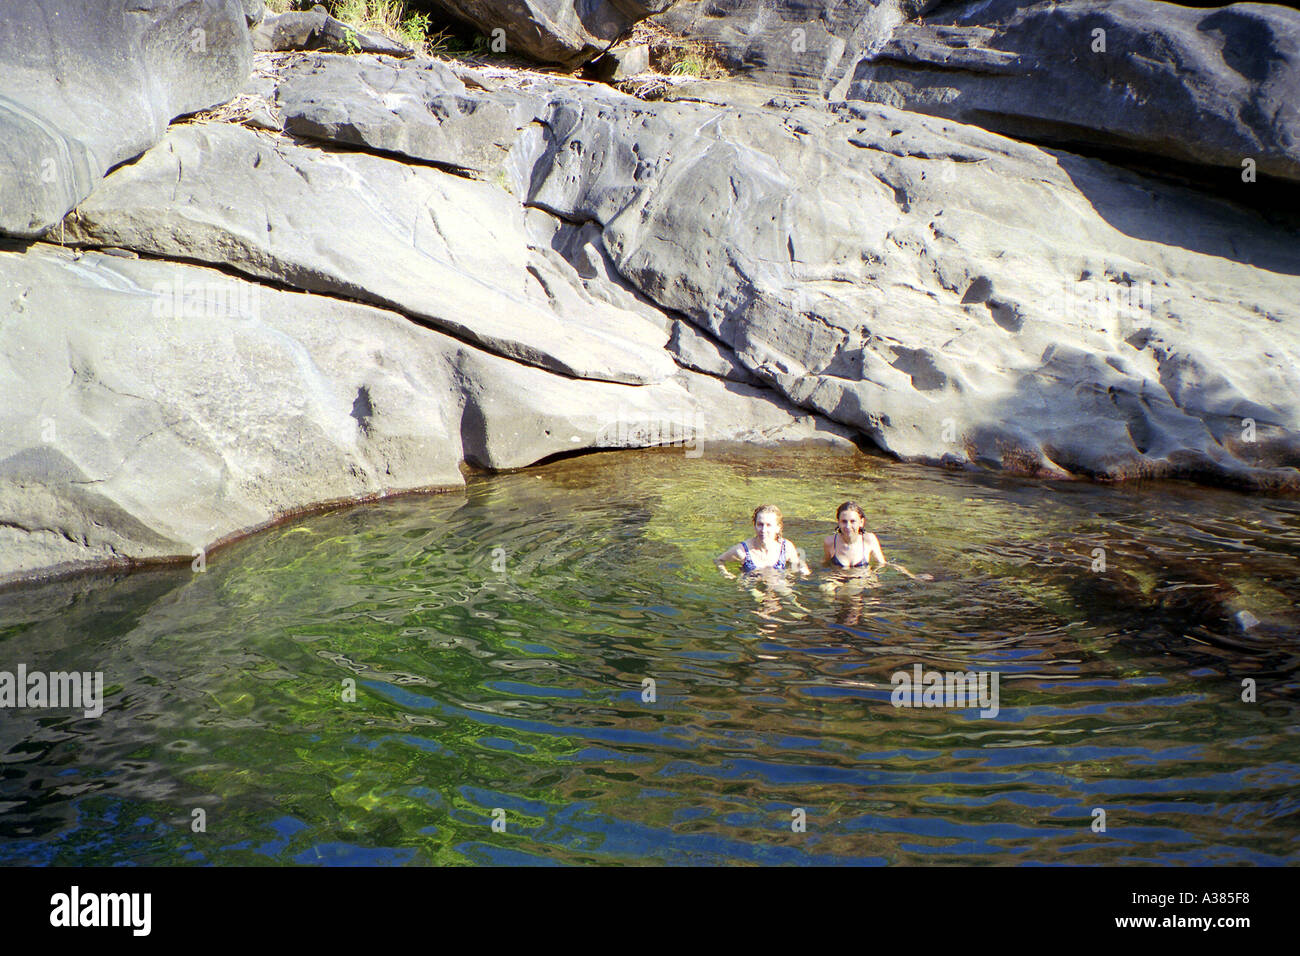 Swimming in Moon Valley in Chapada dos Veadeiros - Stock Image